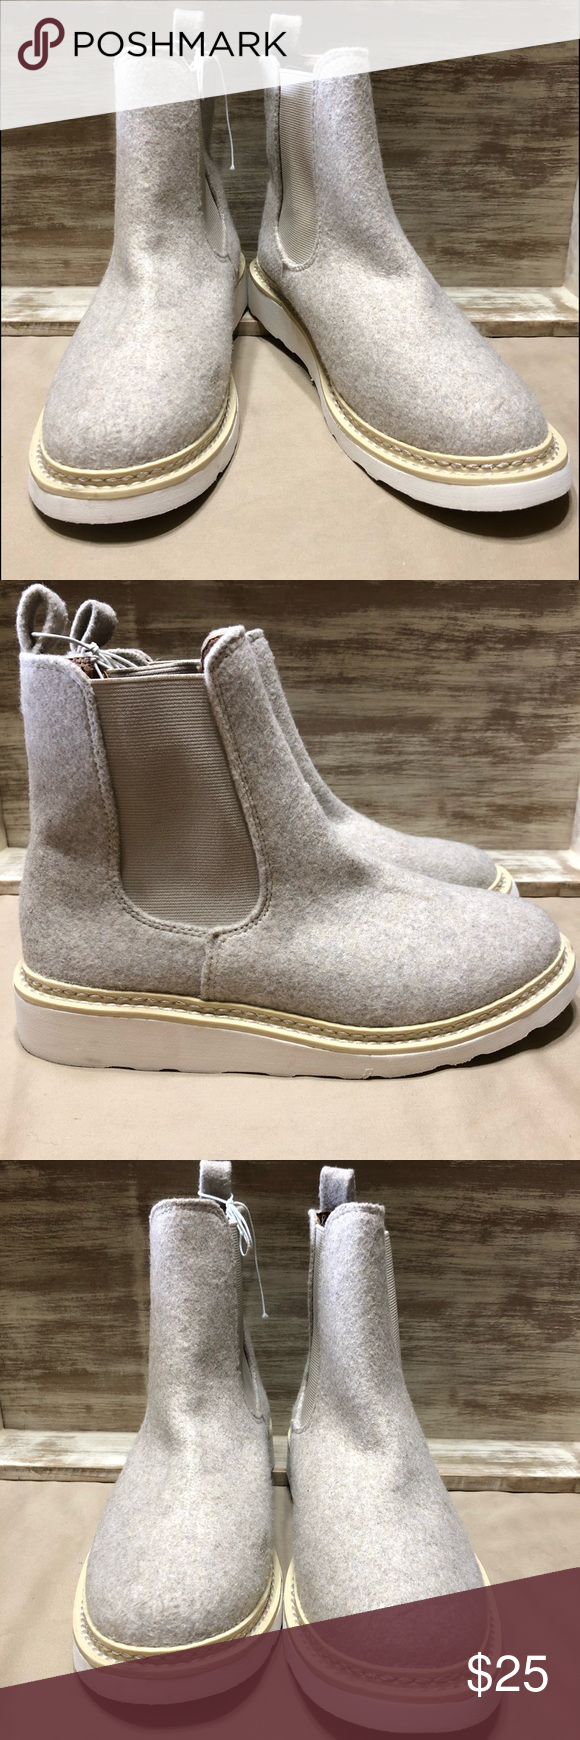 Dawn Fashion Sneakers Boots, NWT